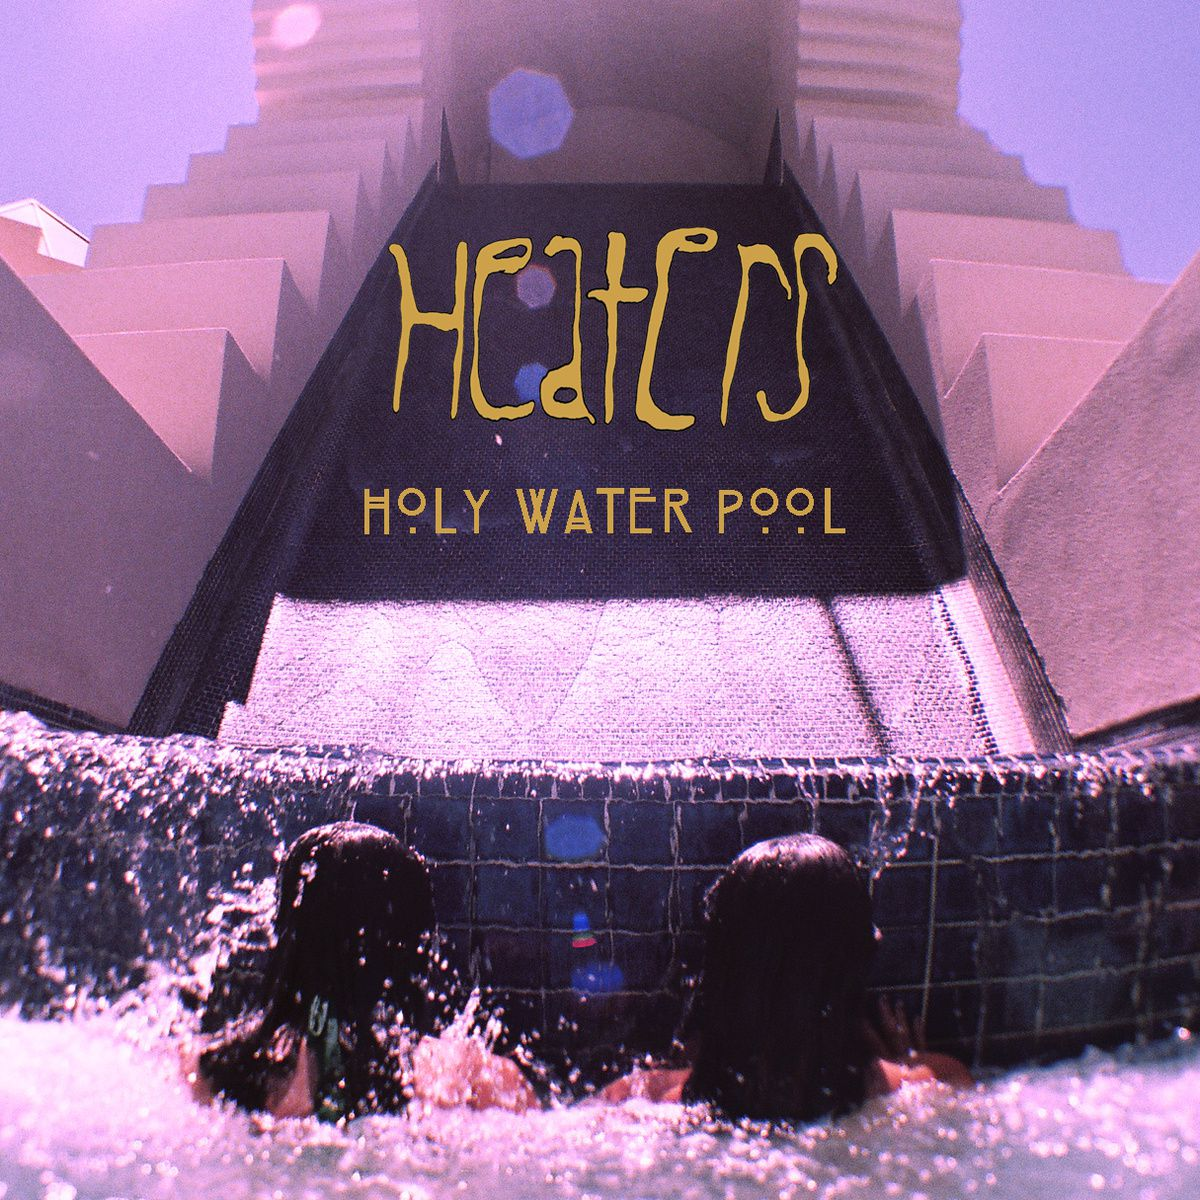 HEATERS - Holy water pool (2015)